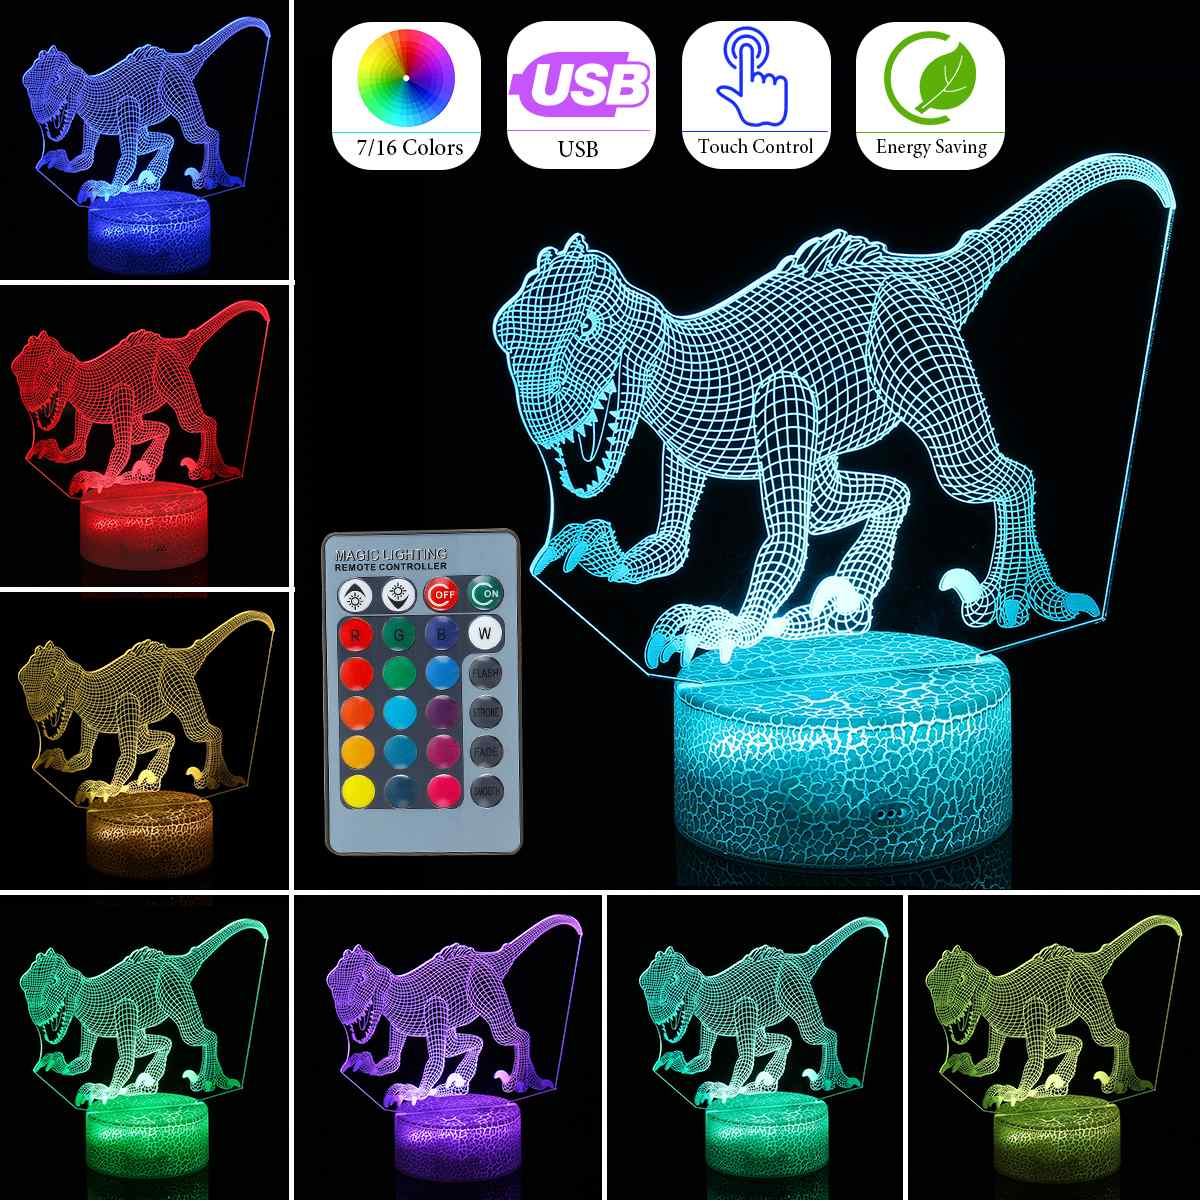 Dinosaur 3D Illusion Lamp Animal LED Night Light For Children Color Change USB Remote/Touch Table Lamp Crack Base Home DecorDinosaur 3D Illusion Lamp Animal LED Night Light For Children Color Change USB Remote/Touch Table Lamp Crack Base Home Decor